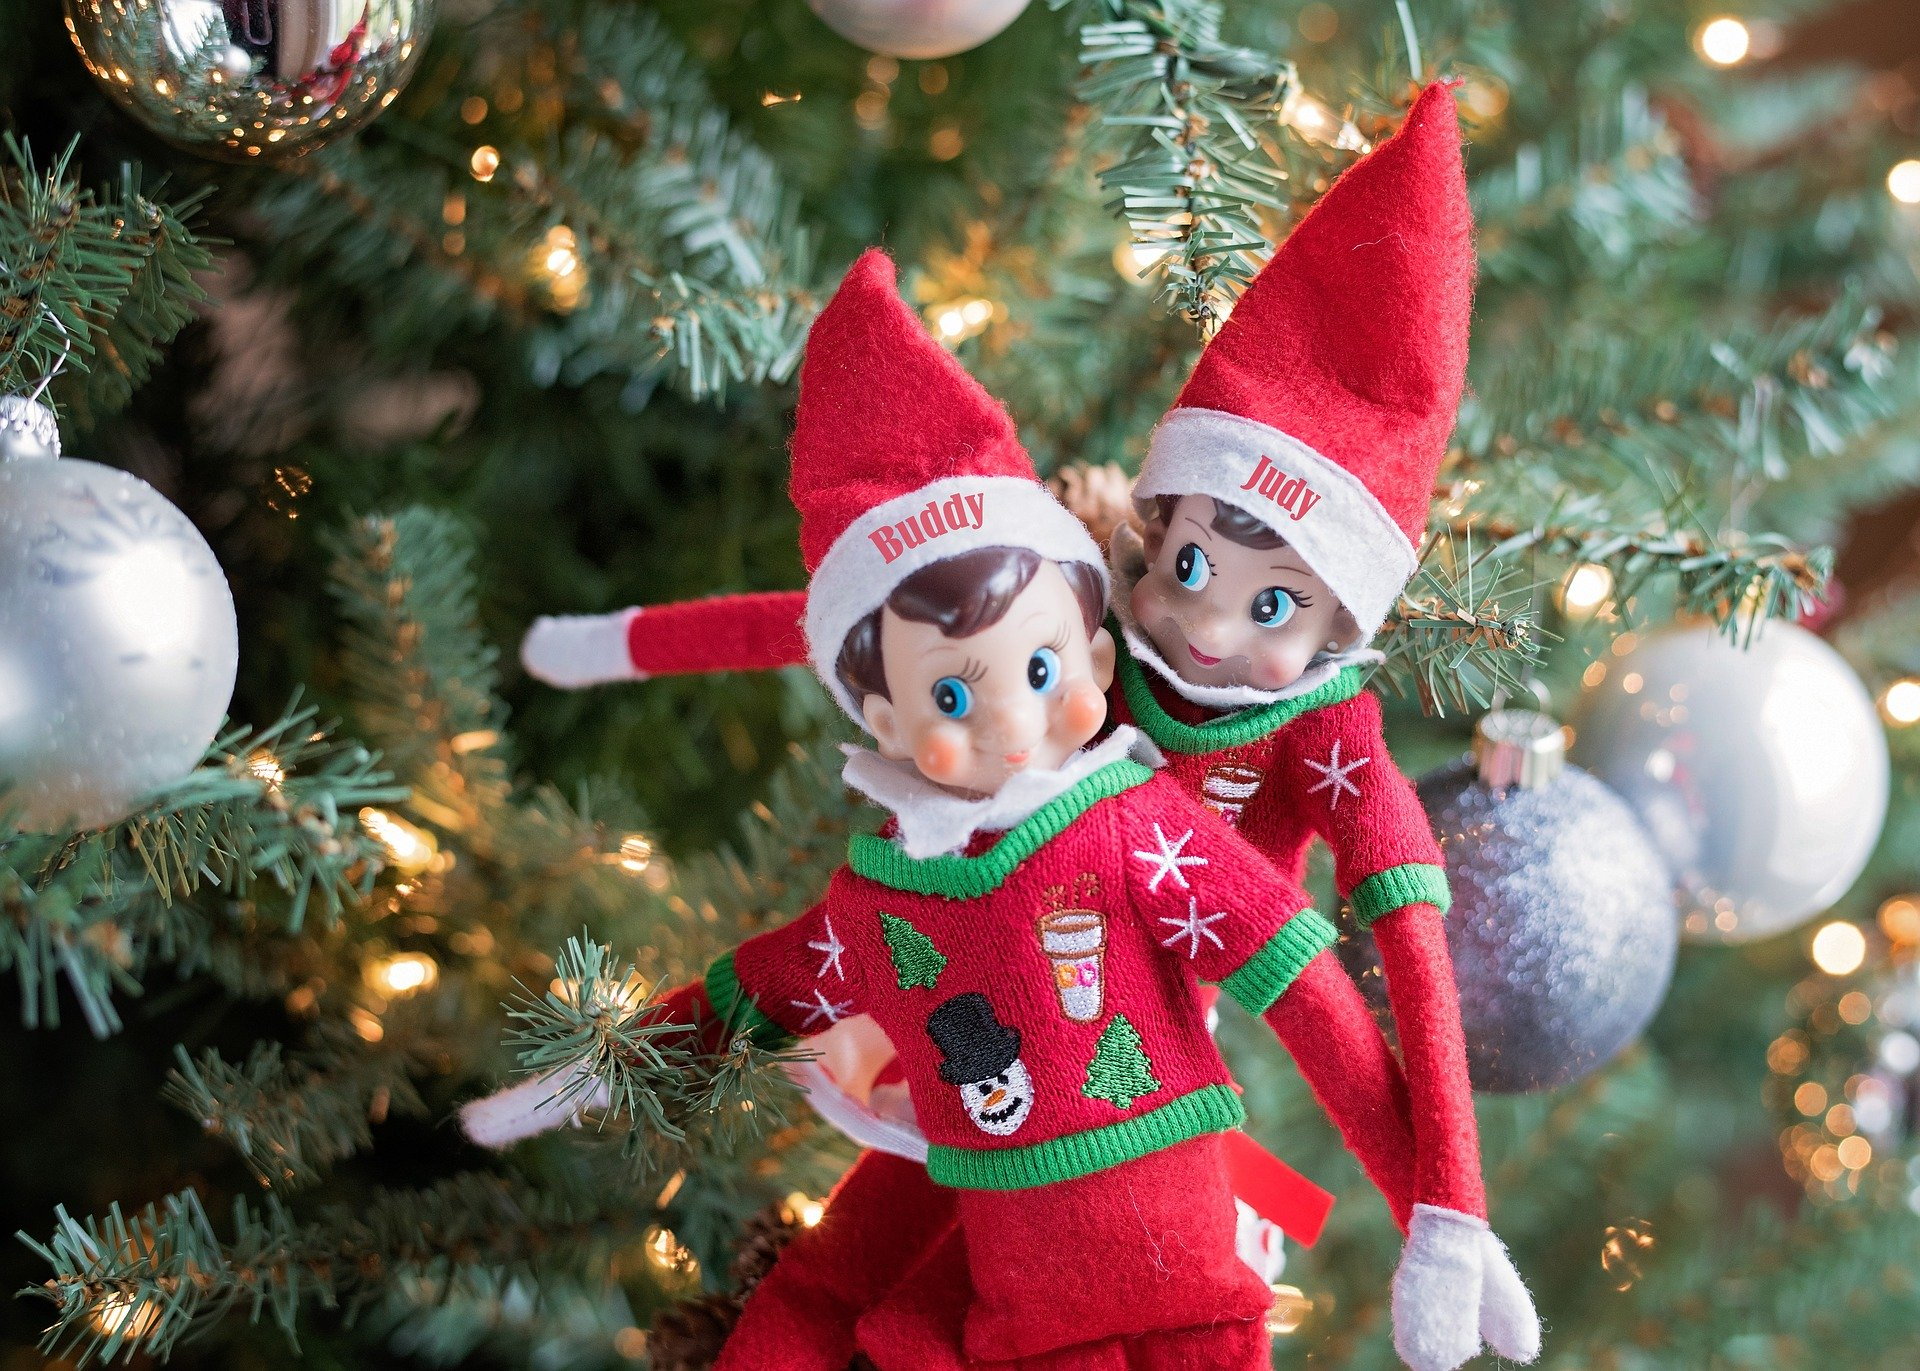 elf-on-a-shelf-2705858_1920.jpg